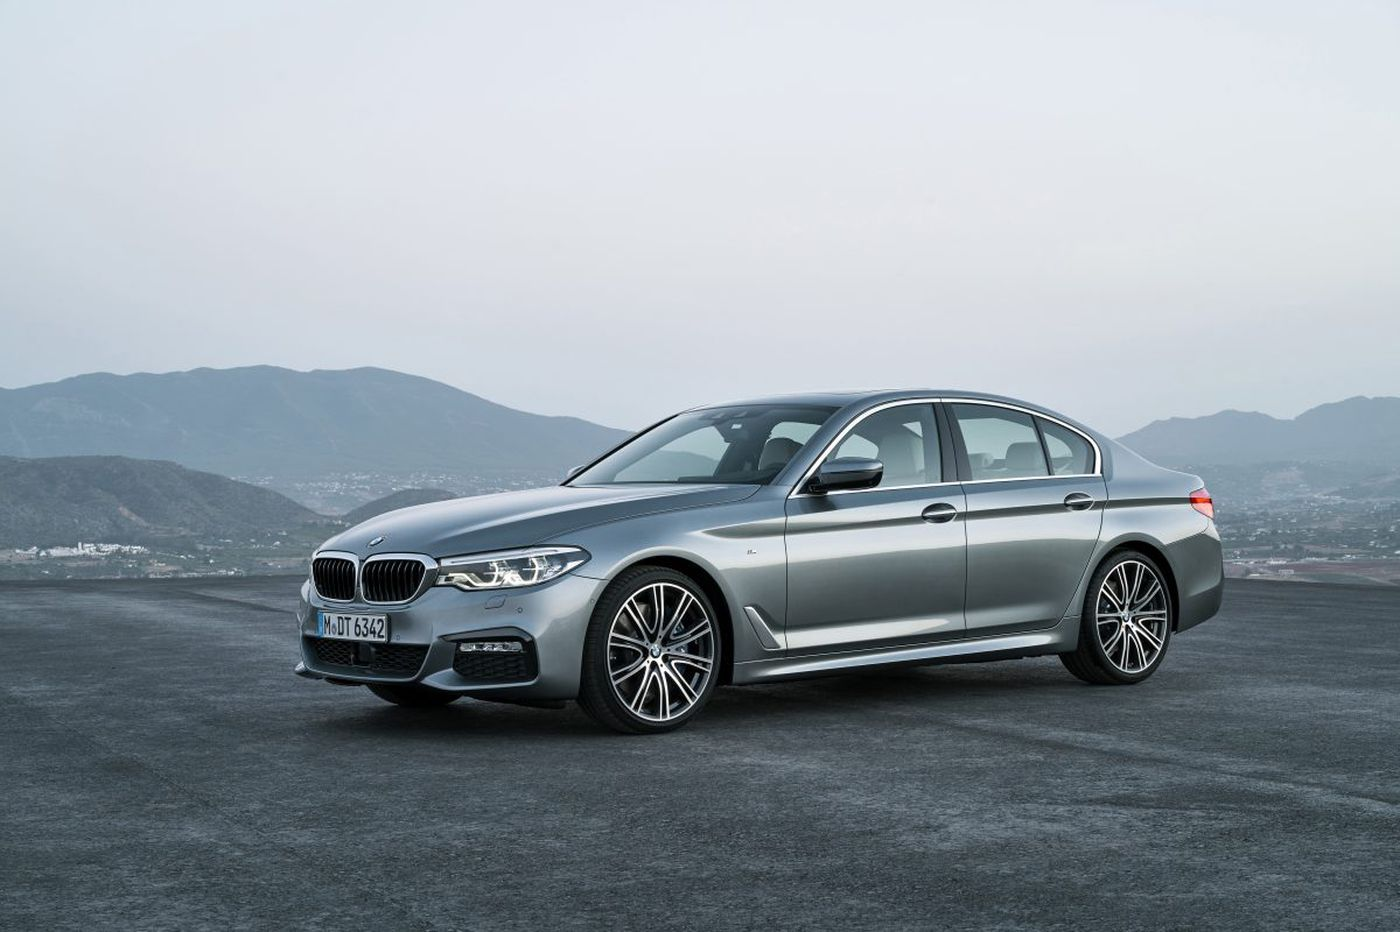 BMW 5 Series charges high admission for a great time